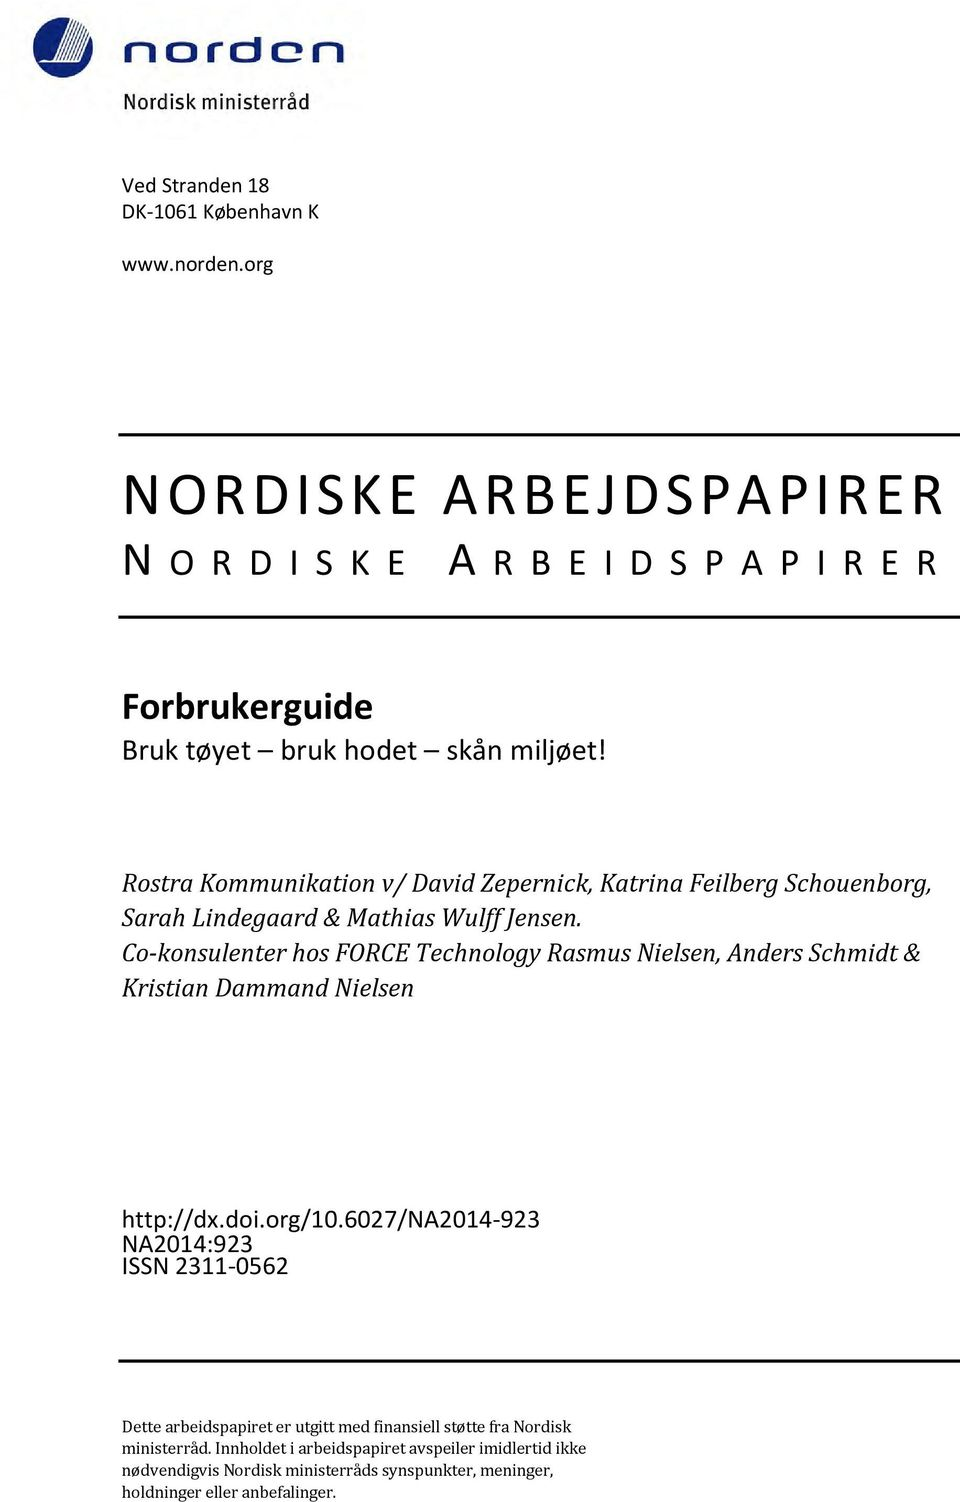 Co-konsulenter hos FORCE Technology Rasmus Nielsen, Anders Schmidt & Kristian Dammand Nielsen http://dx.doi.org/10.